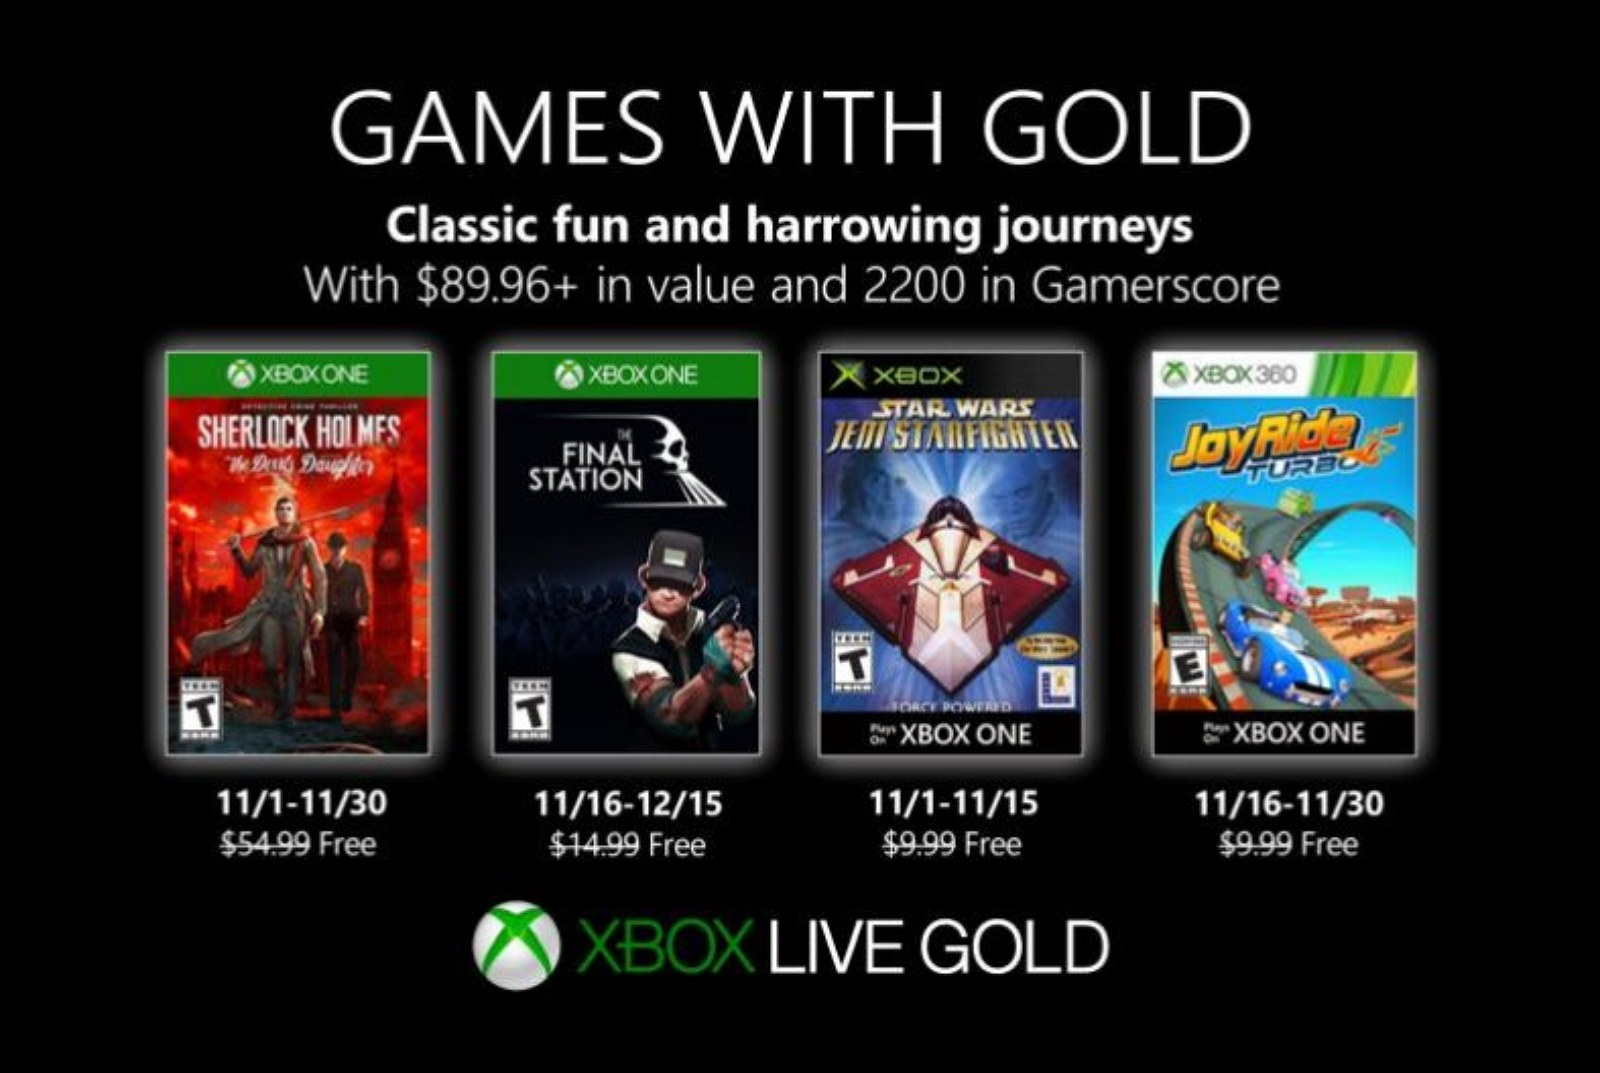 Xbox Games with Gold for November 2019 (source: Microsoft)